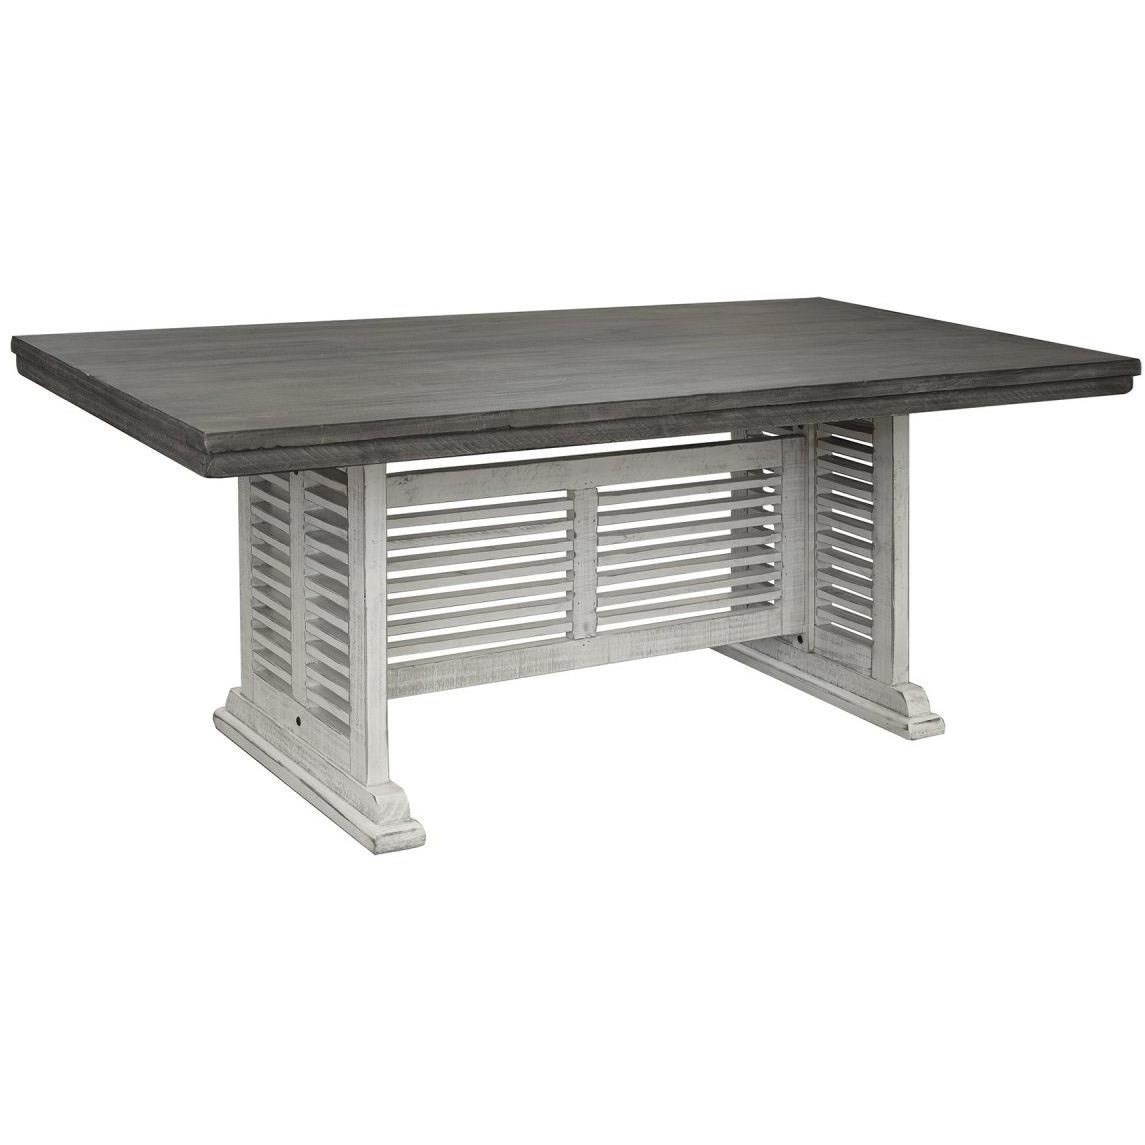 Stone Dining Table by International Furniture Direct at Catalog Outlet